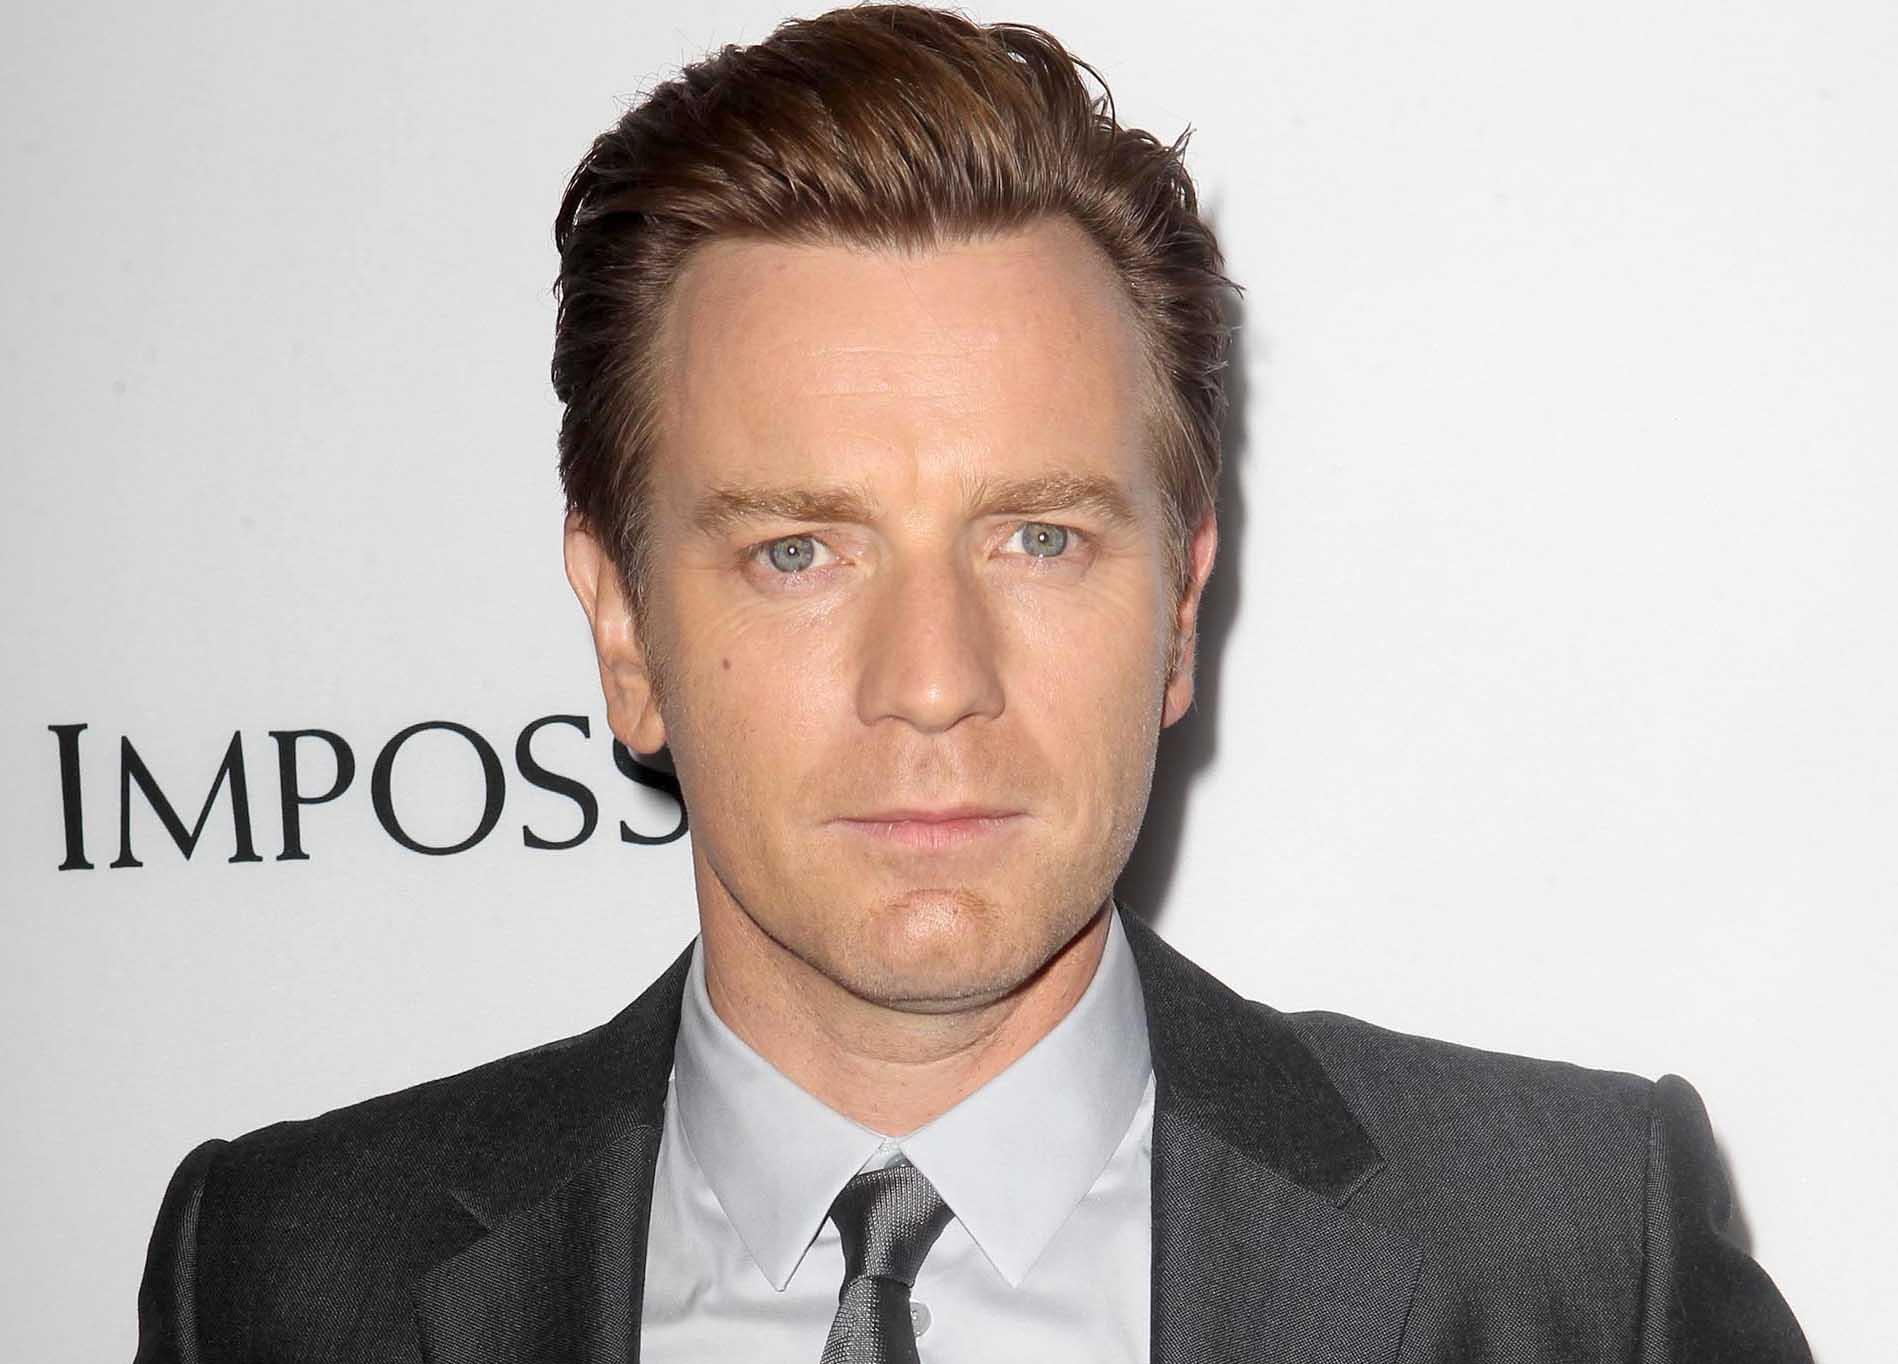 Ewan McGregor Set To Play Two Roles In FX Series 'Fargo ...